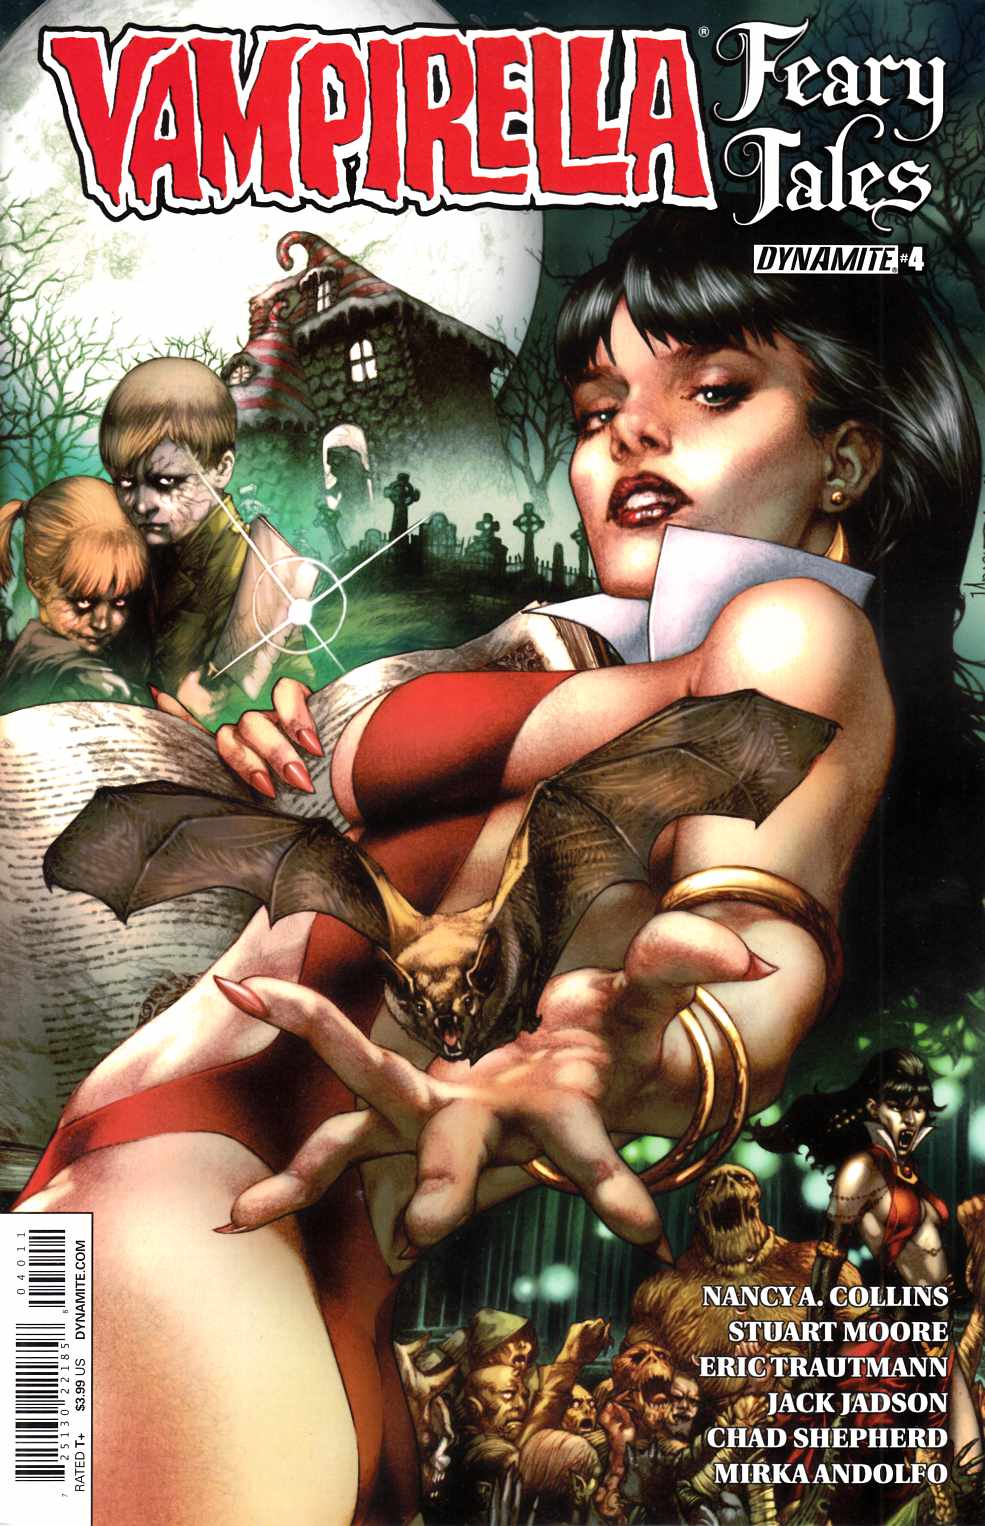 Vampirella Feary Tales #4 Cover A- Anacleto [Dynamite Comic]